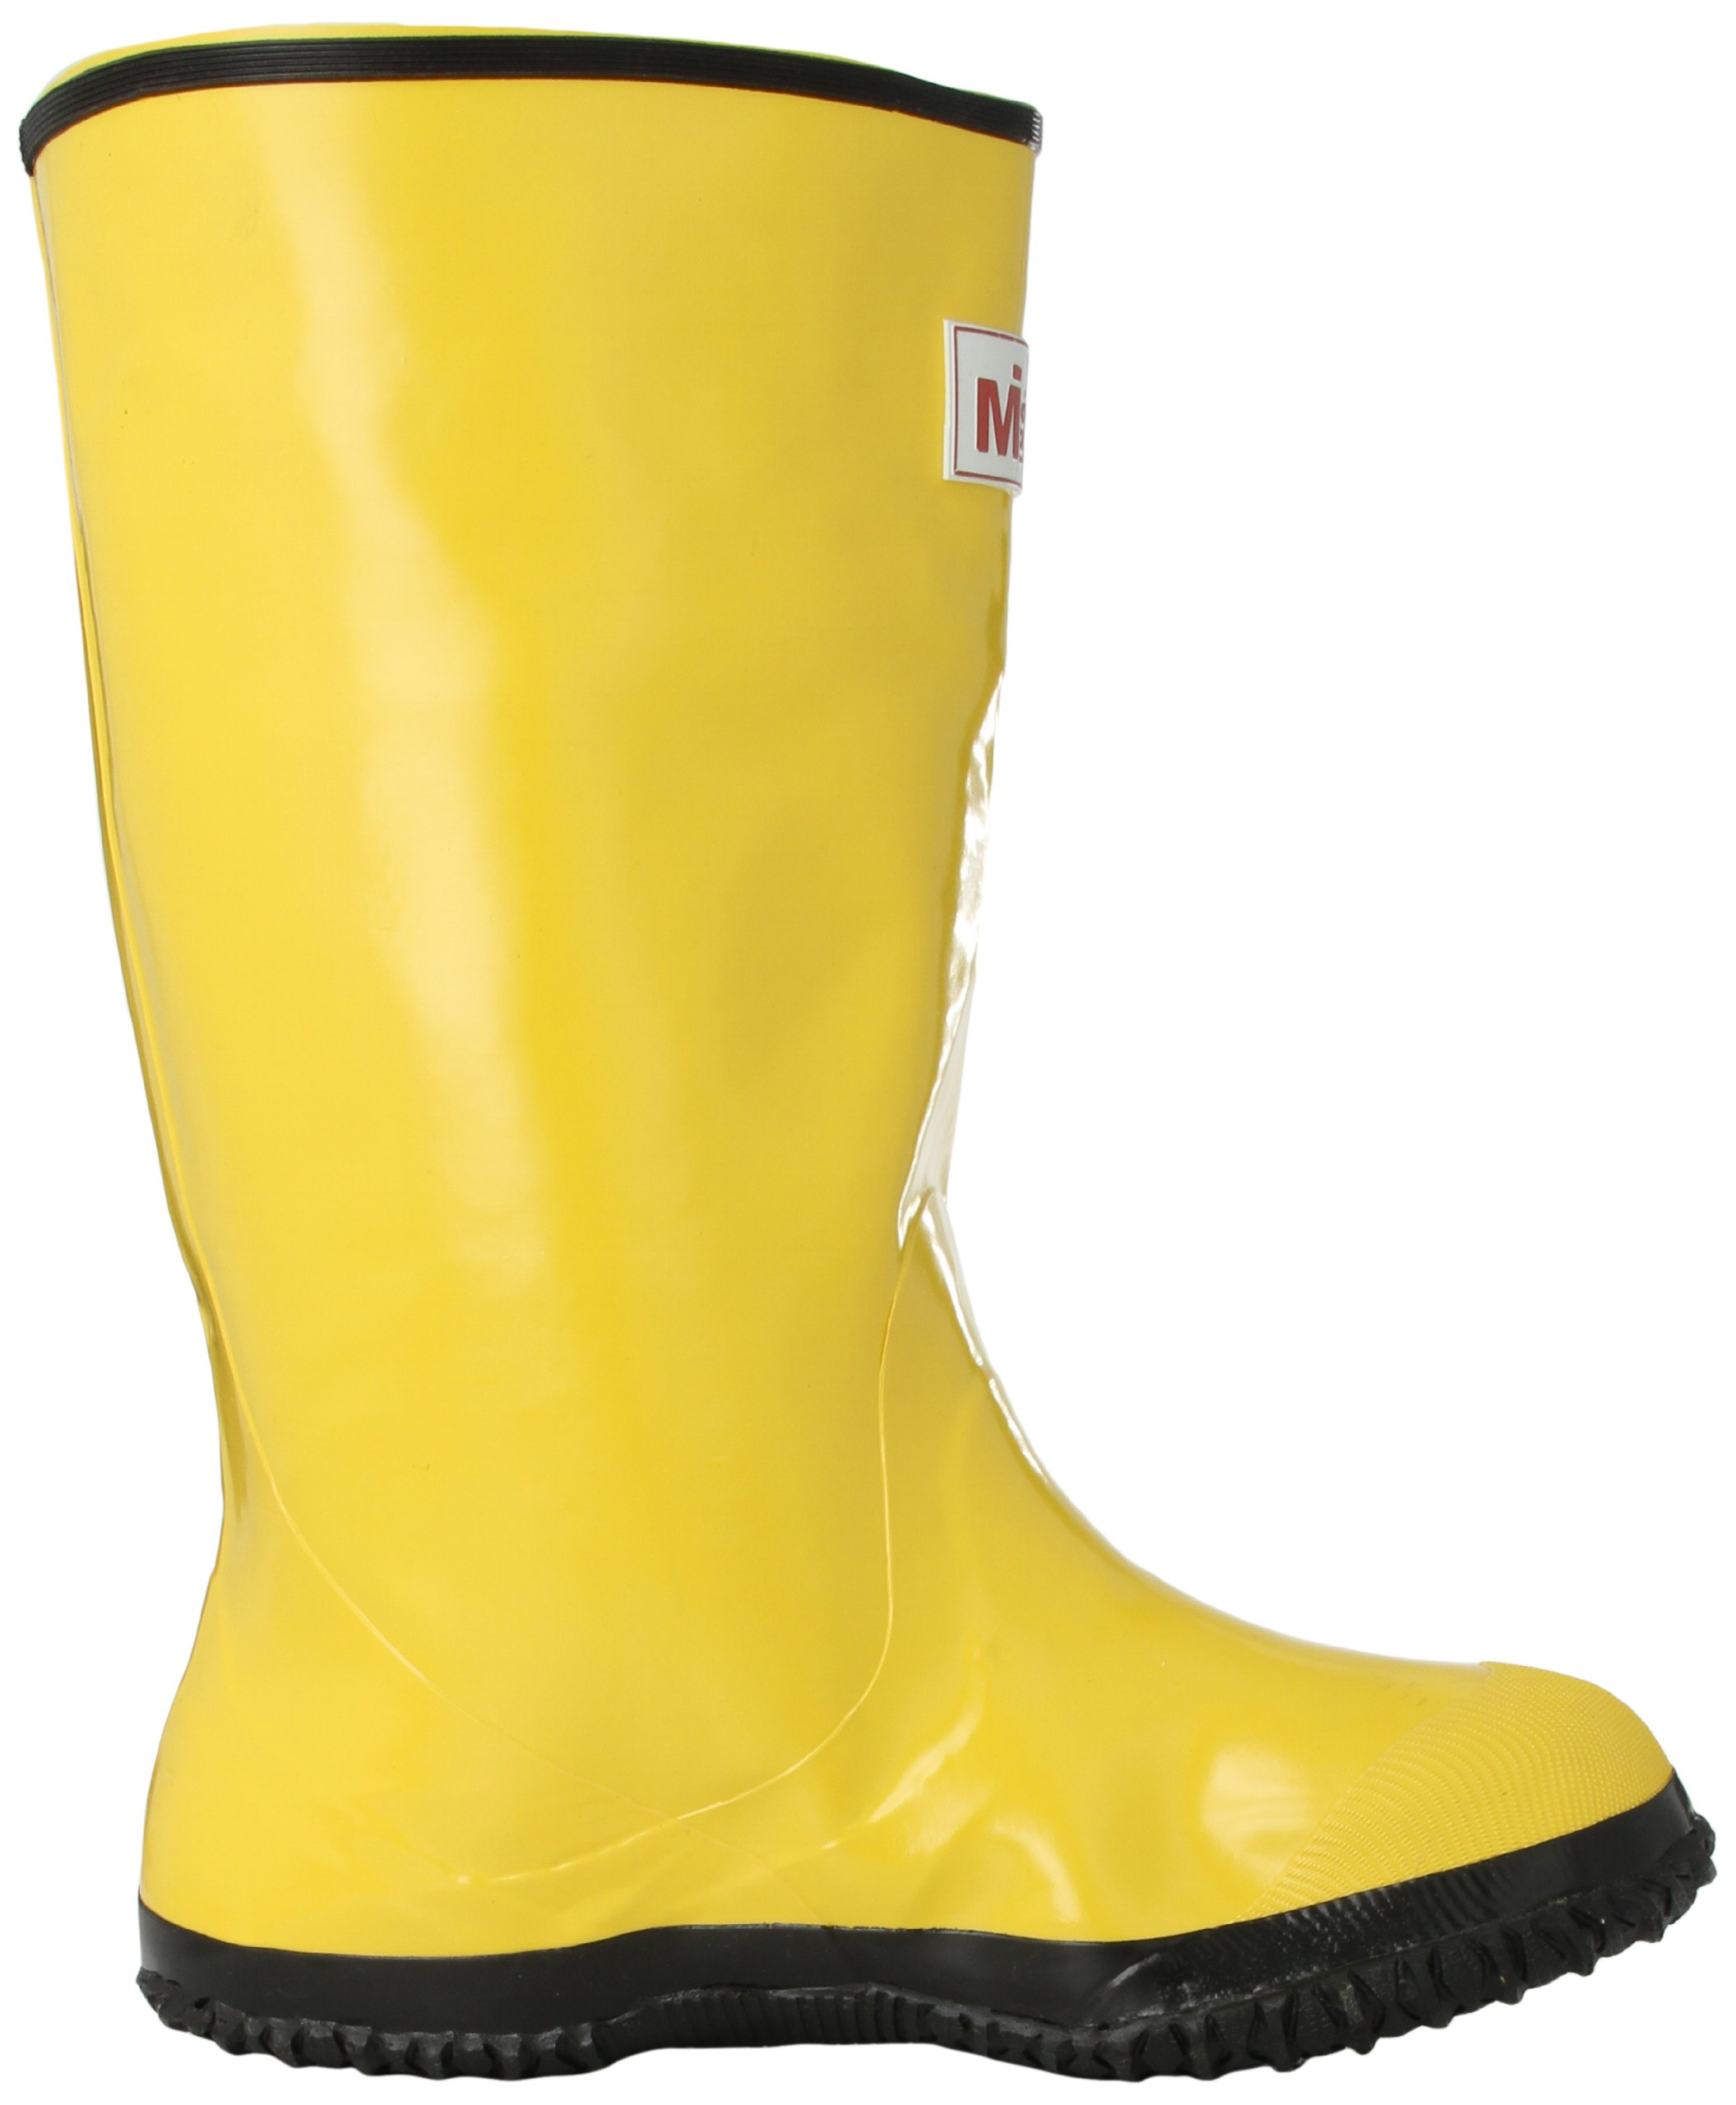 Mutual 14500 Extra Wide Over-The-Shoe Work Slush Boot, 17'' Height, Size 14, Yellow by Mutual Industries (Image #6)